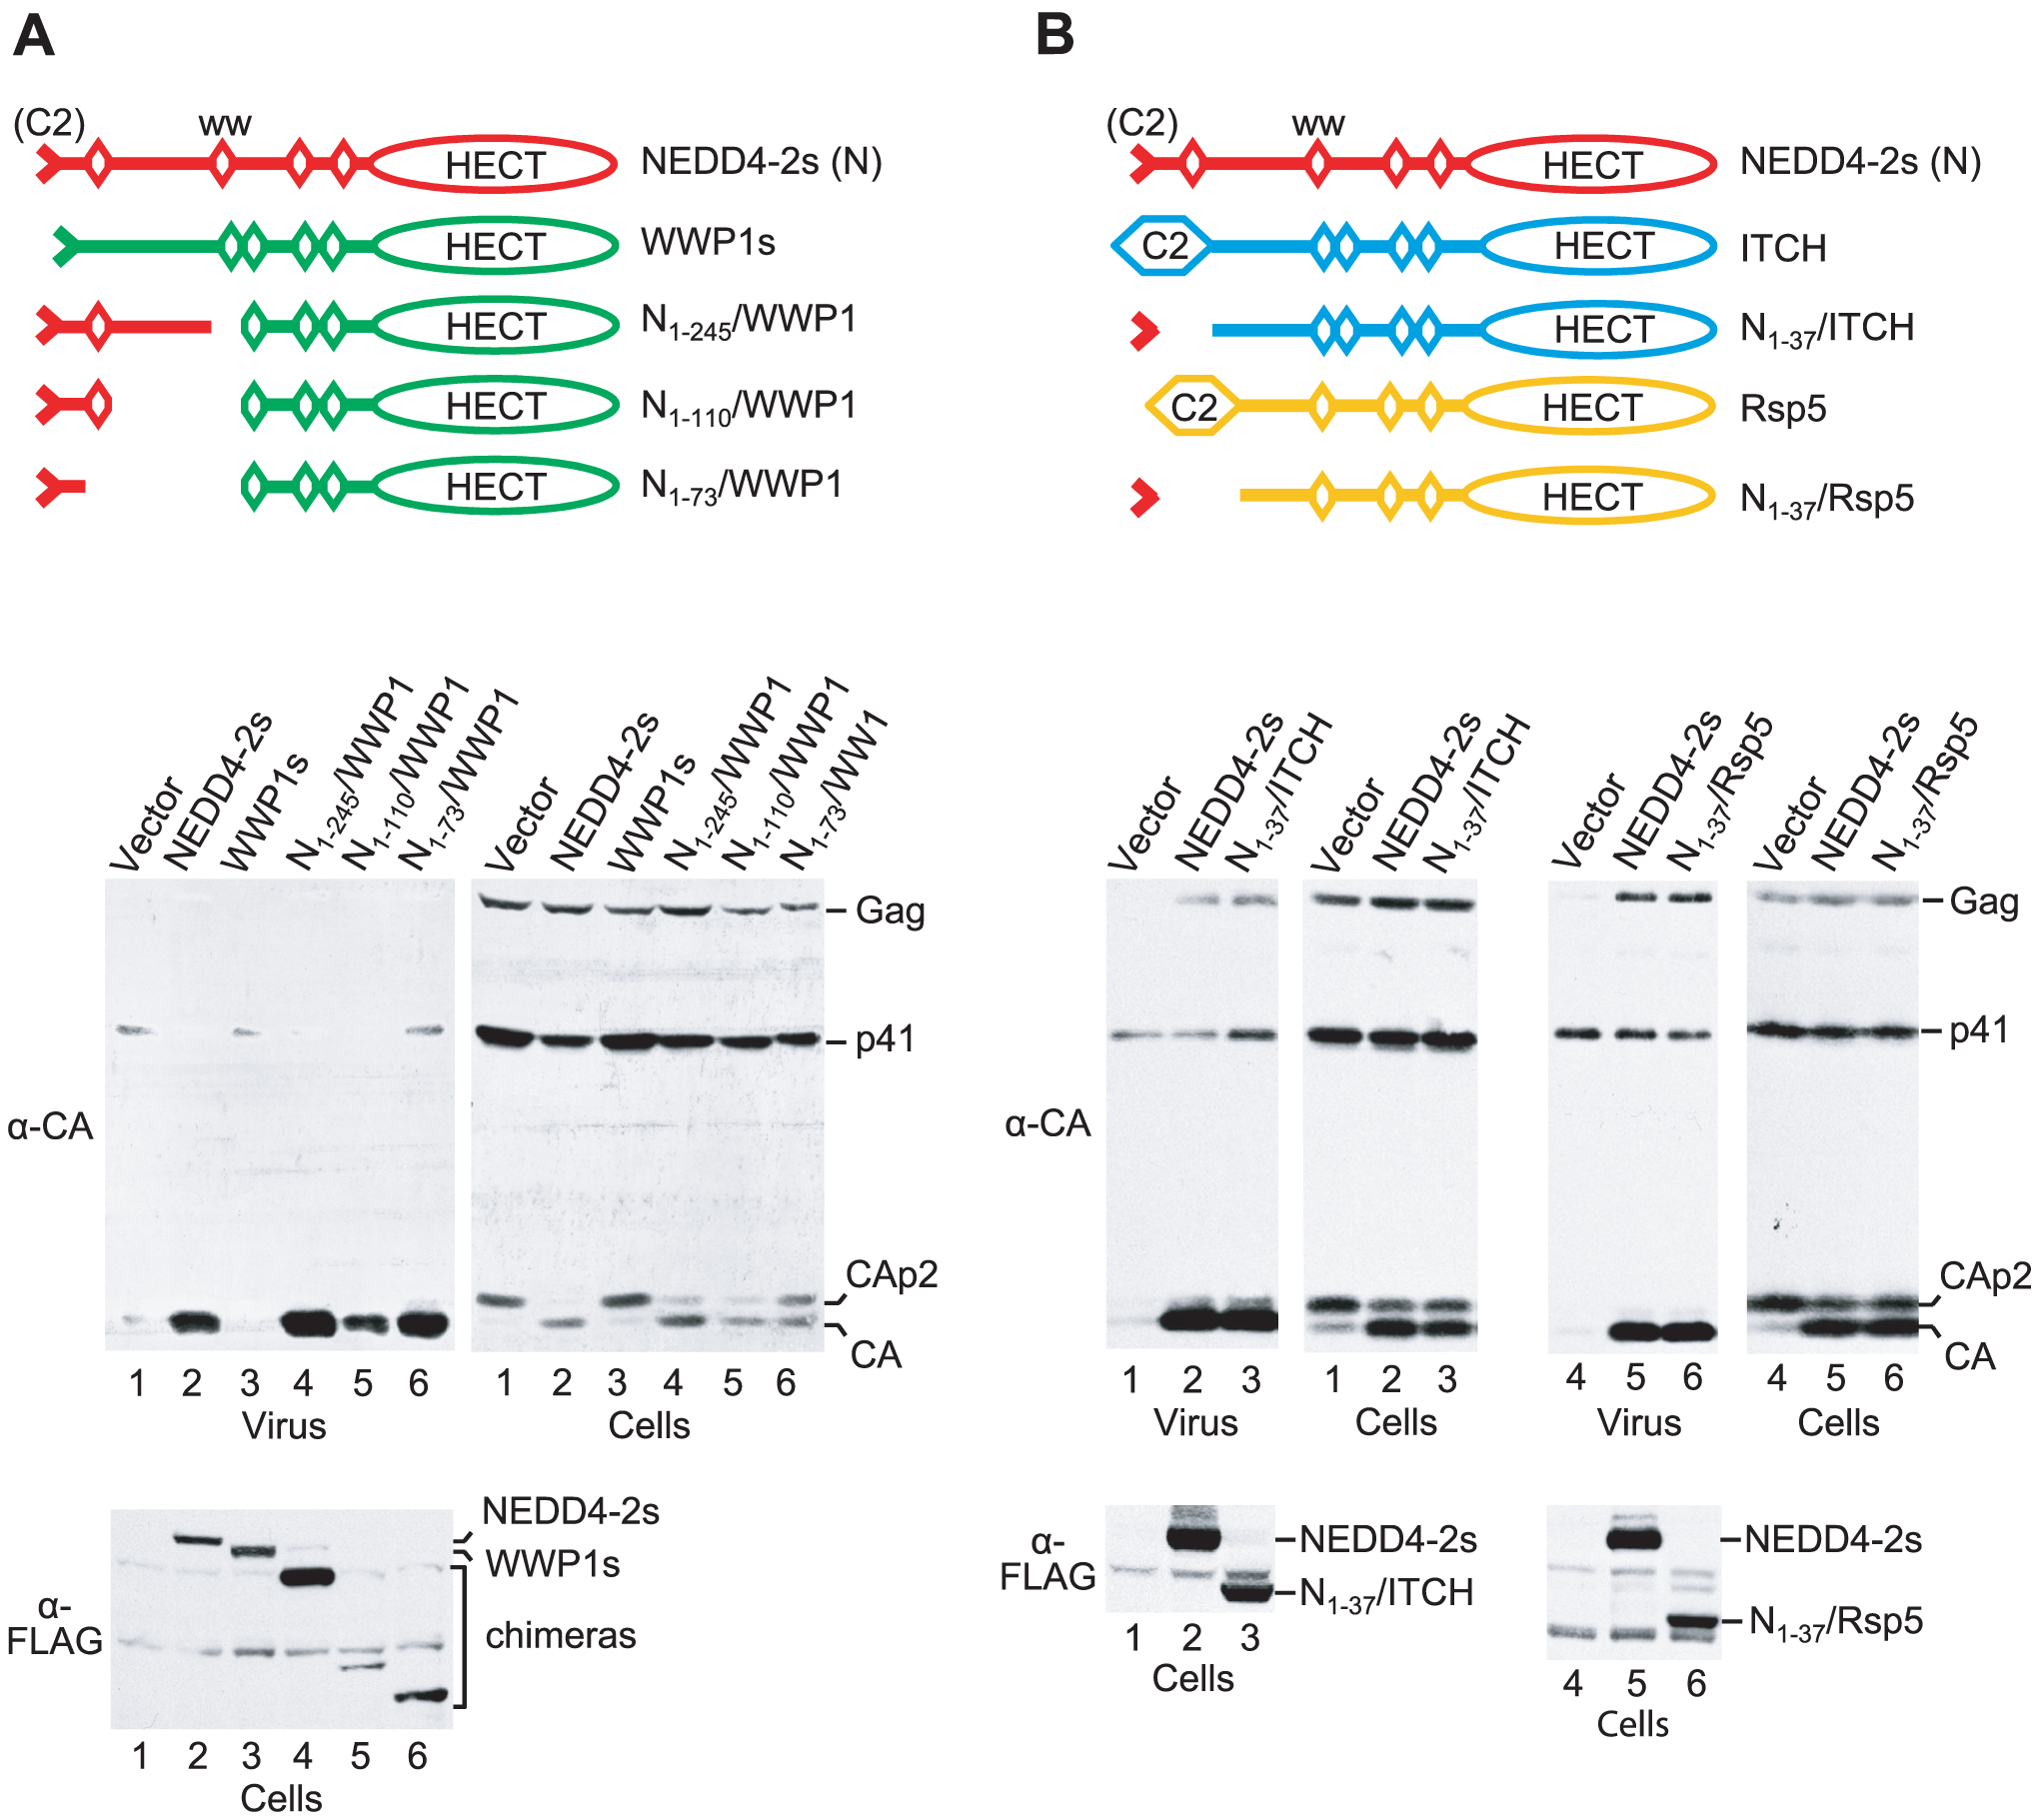 The residual C2 domain of NEDD4-2s is sufficient to transfer the ability to rescue HIV-1<sub>ΔPTAPP</sub>.